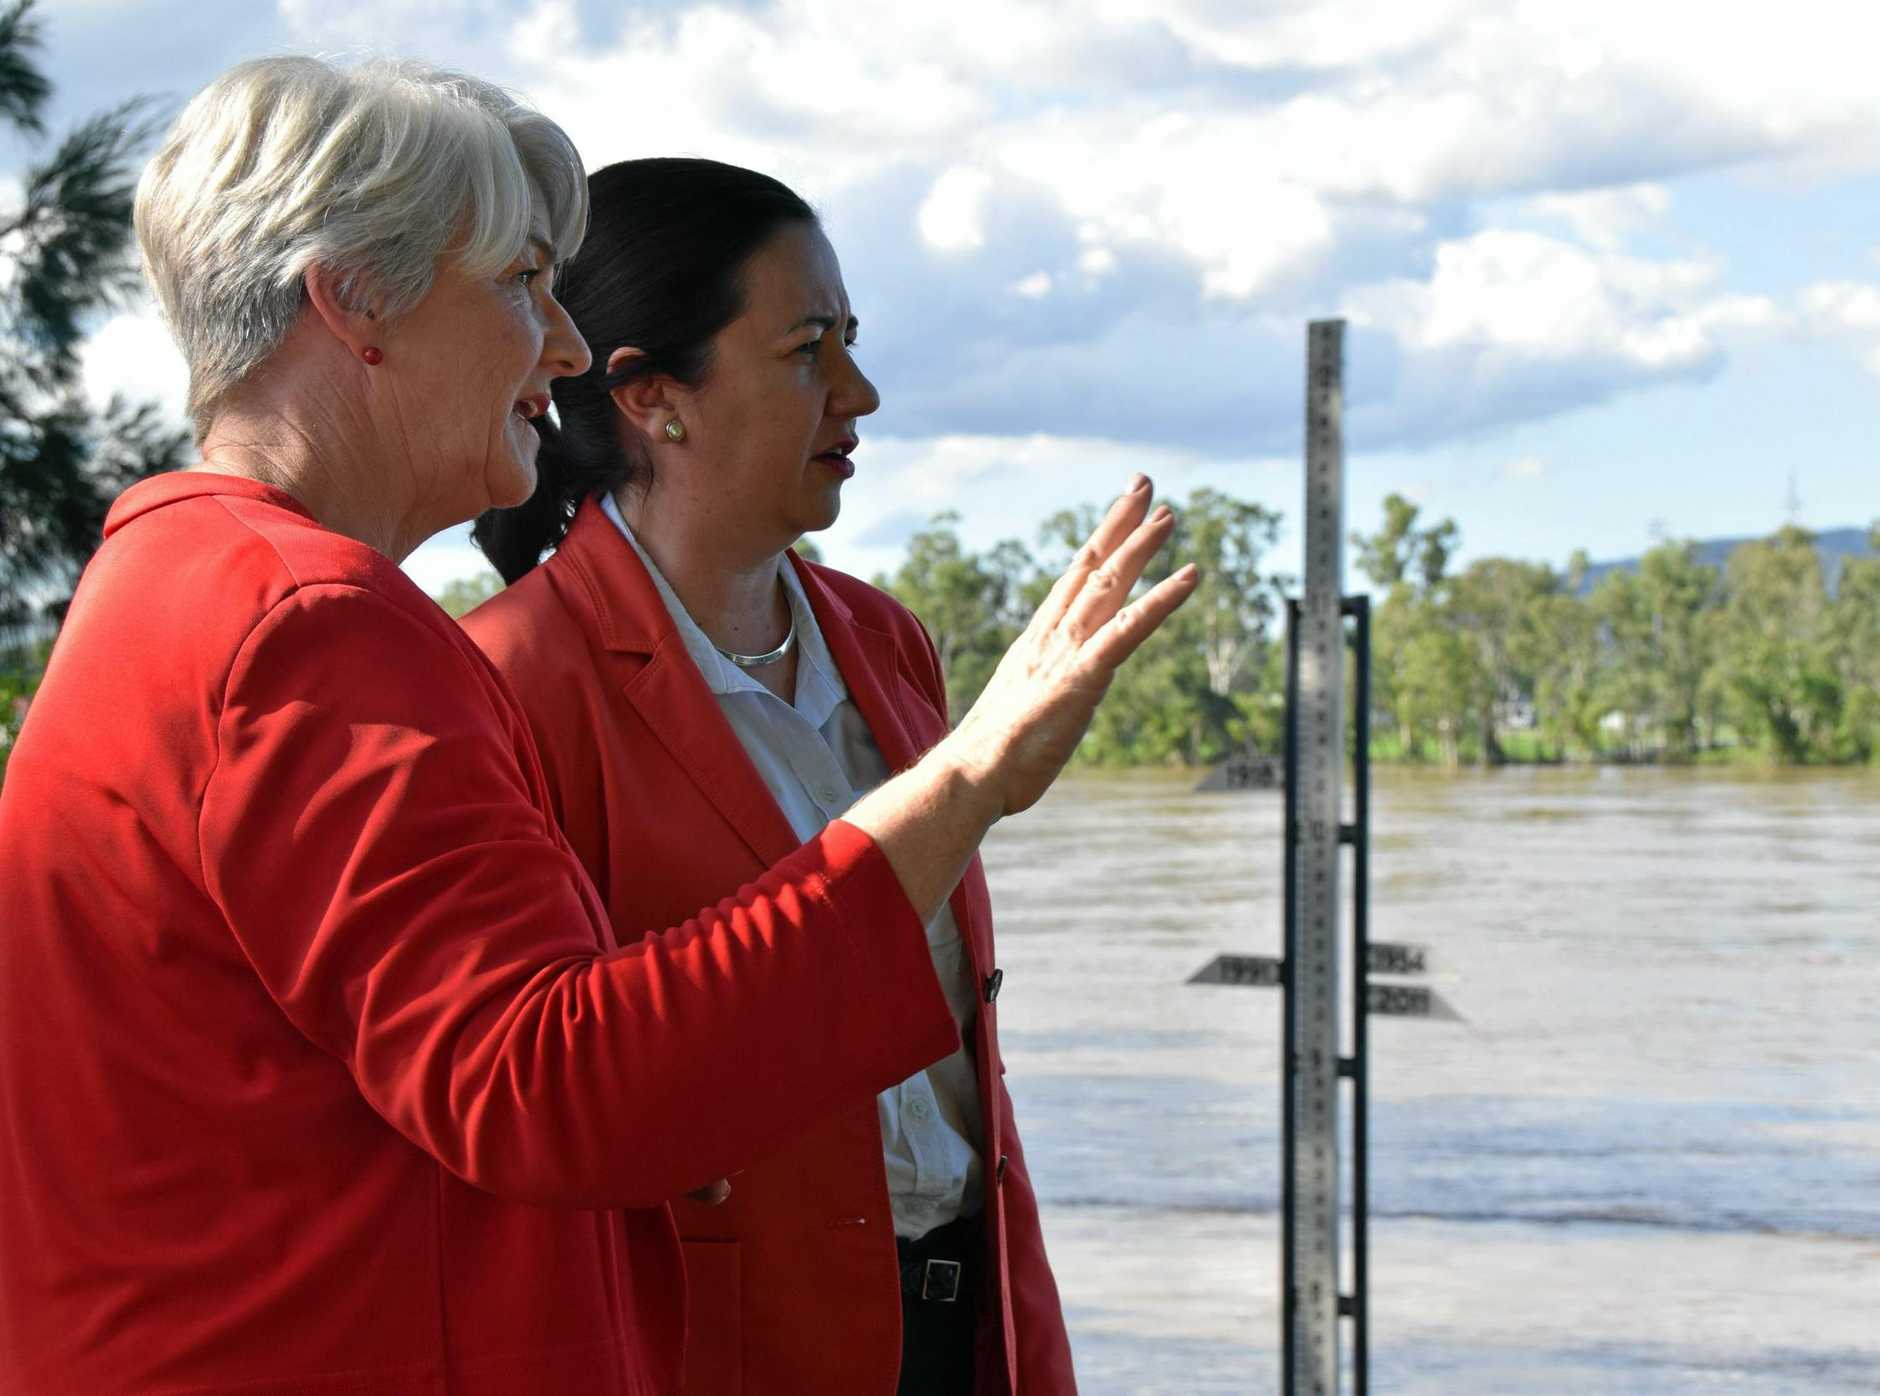 Rockhampton mayor Margaret Strelow overlooks the Fitzroy River with Queensland Premier Annastacia Palaszczuk as the state's leader arrived in Rockhampton to hear first hand the emergency plan for a major flood this week.